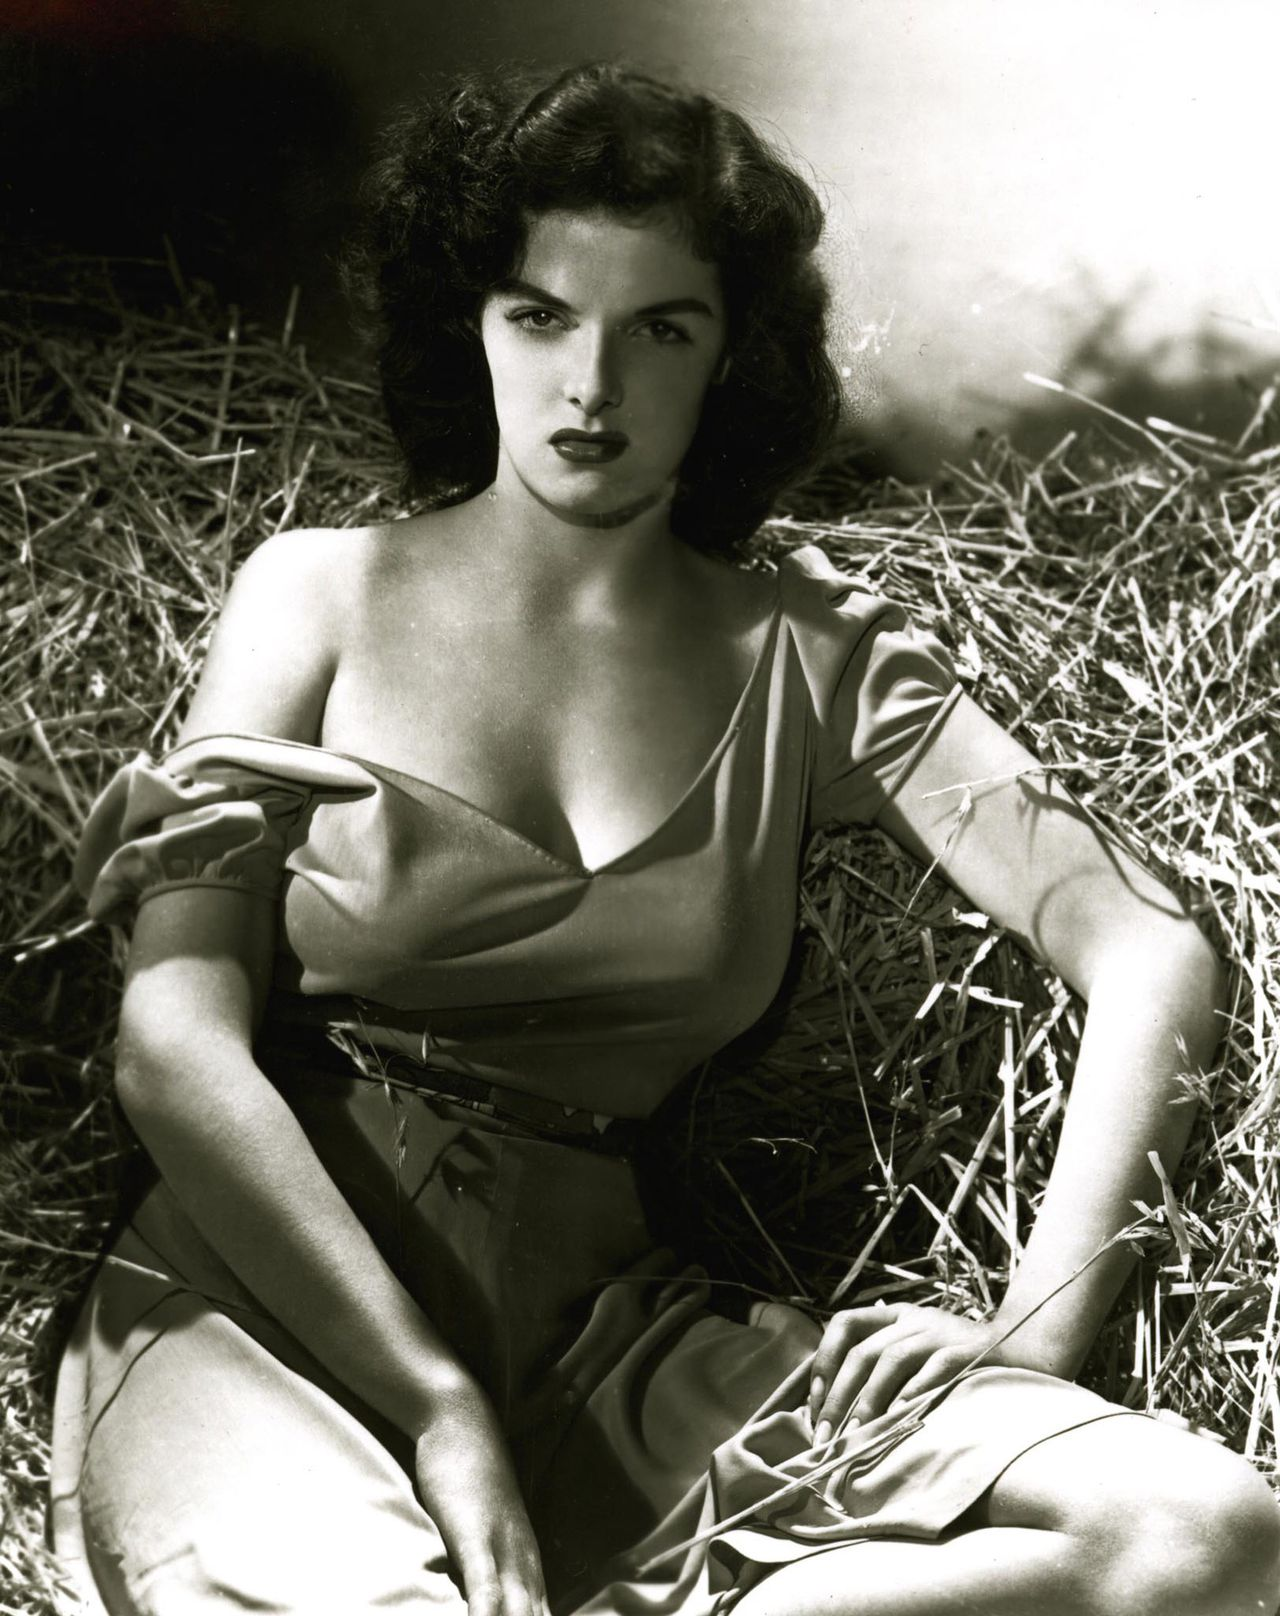 """Actress Jane Russell is shown in this publicity photograph for the 1943 film """"The Outlaw"""" released to Reuters on February 28, 2011. Russell, who starred in the movie """"Gentlemen Prefer Blondes"""" and became a controversial Hollywood sex symbol, has died in California at the age of 89, the Los Angeles Times reported on February 28, 2011. It was not immediately clear when or how the former movie star died. REUTERS/Handout (UNITED STATES - Tags: ENTERTAINMENT OBITUARY SOCIETY IMAGES OF THE DAY) NO SALES. NO ARCHIVES. FOR EDITORIAL USE ONLY. NOT FOR SALE FOR MARKETING OR ADVERTISING CAMPAIGNS. THIS IMAGE HAS BEEN SUPPLIED BY A THIRD PARTY. IT IS DISTRIBUTED, EXACTLY AS RECEIVED BY REUTERS, AS A SERVICE TO CLIENTS"""